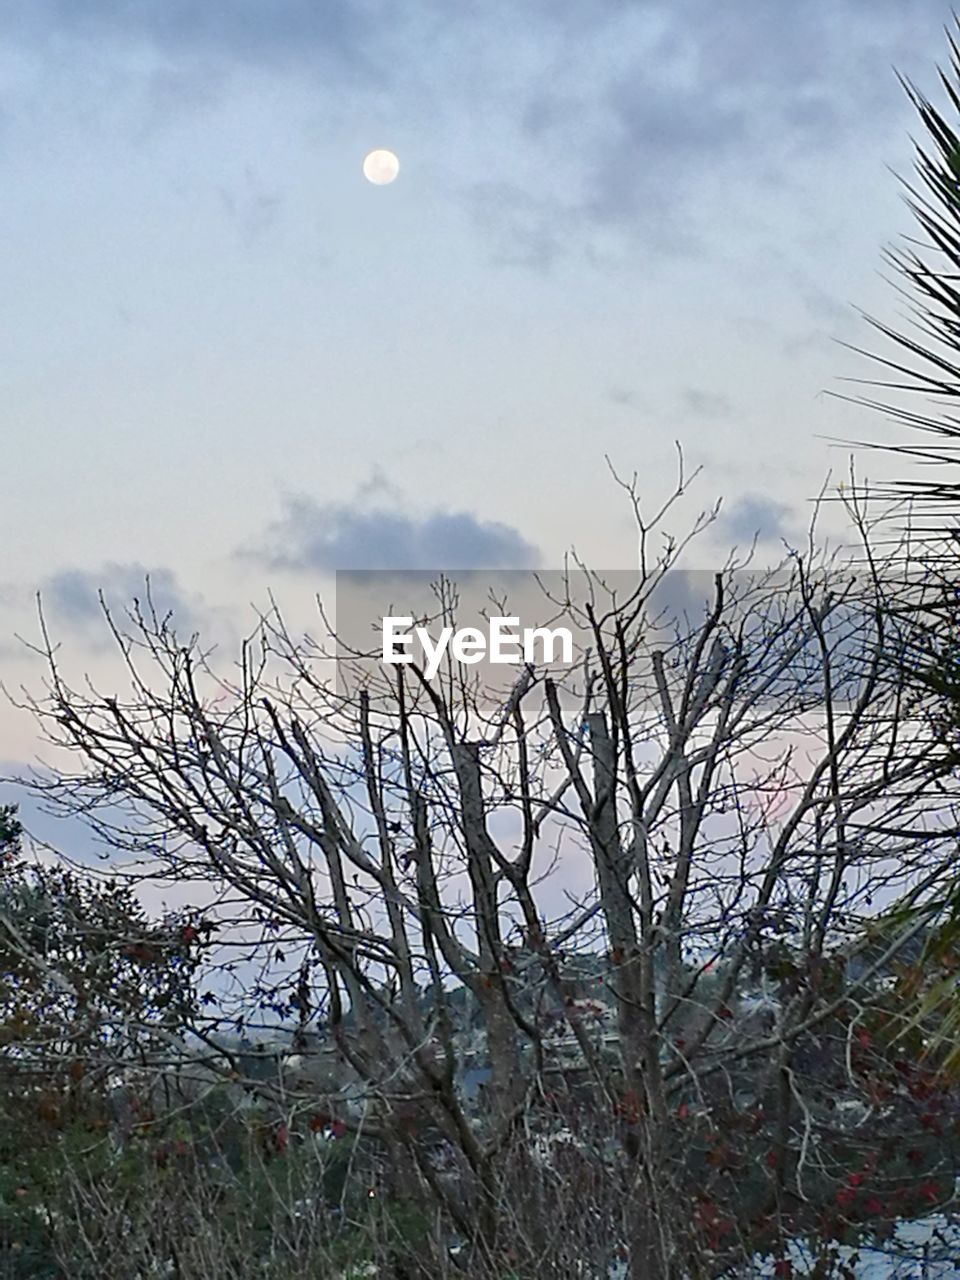 sky, plant, tree, bare tree, tranquility, nature, no people, cloud - sky, tranquil scene, beauty in nature, branch, scenics - nature, water, day, outdoors, winter, growth, moon, cold temperature